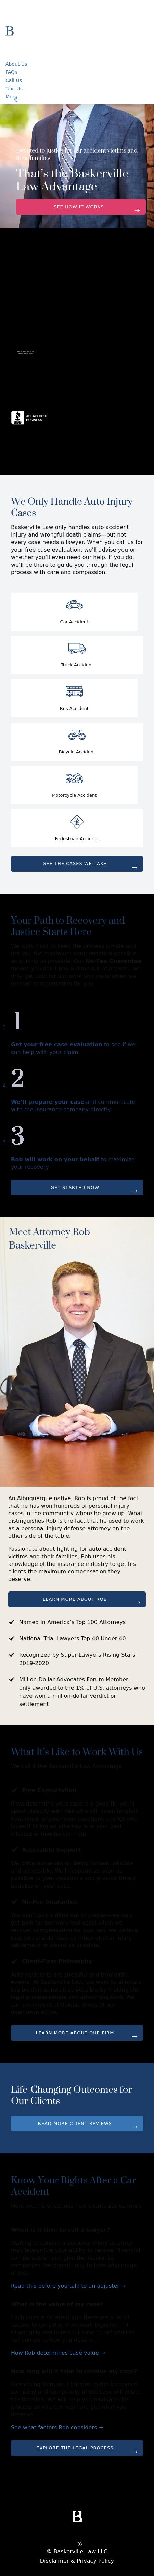 Baskerville Law LLC - Albuquerque NM Lawyers